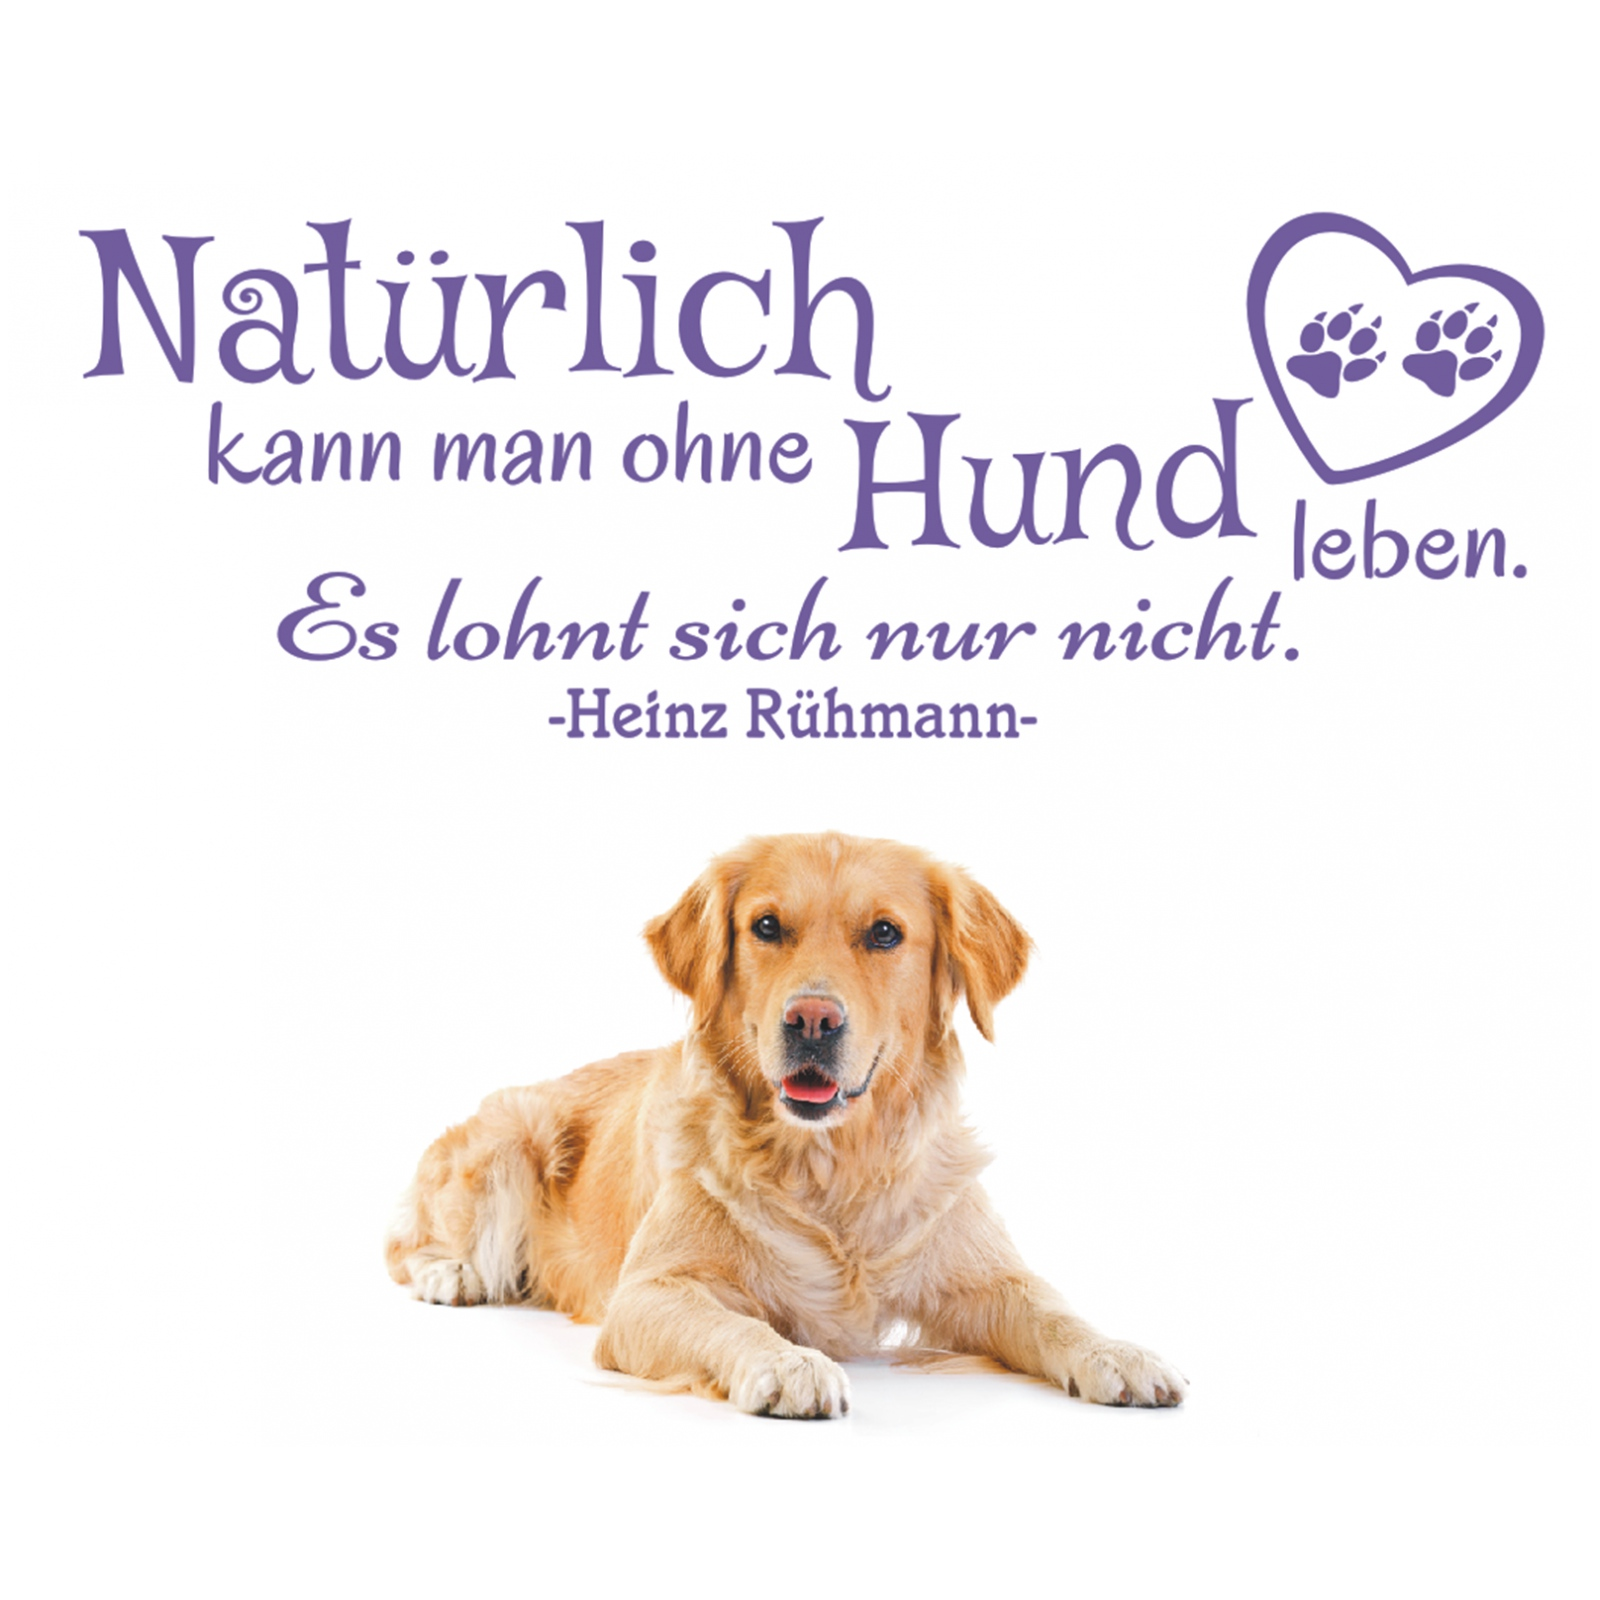 wandtattoo spruch nat rlich kann ohne hund leben wandaufkleber zitat sticker 0 ebay. Black Bedroom Furniture Sets. Home Design Ideas